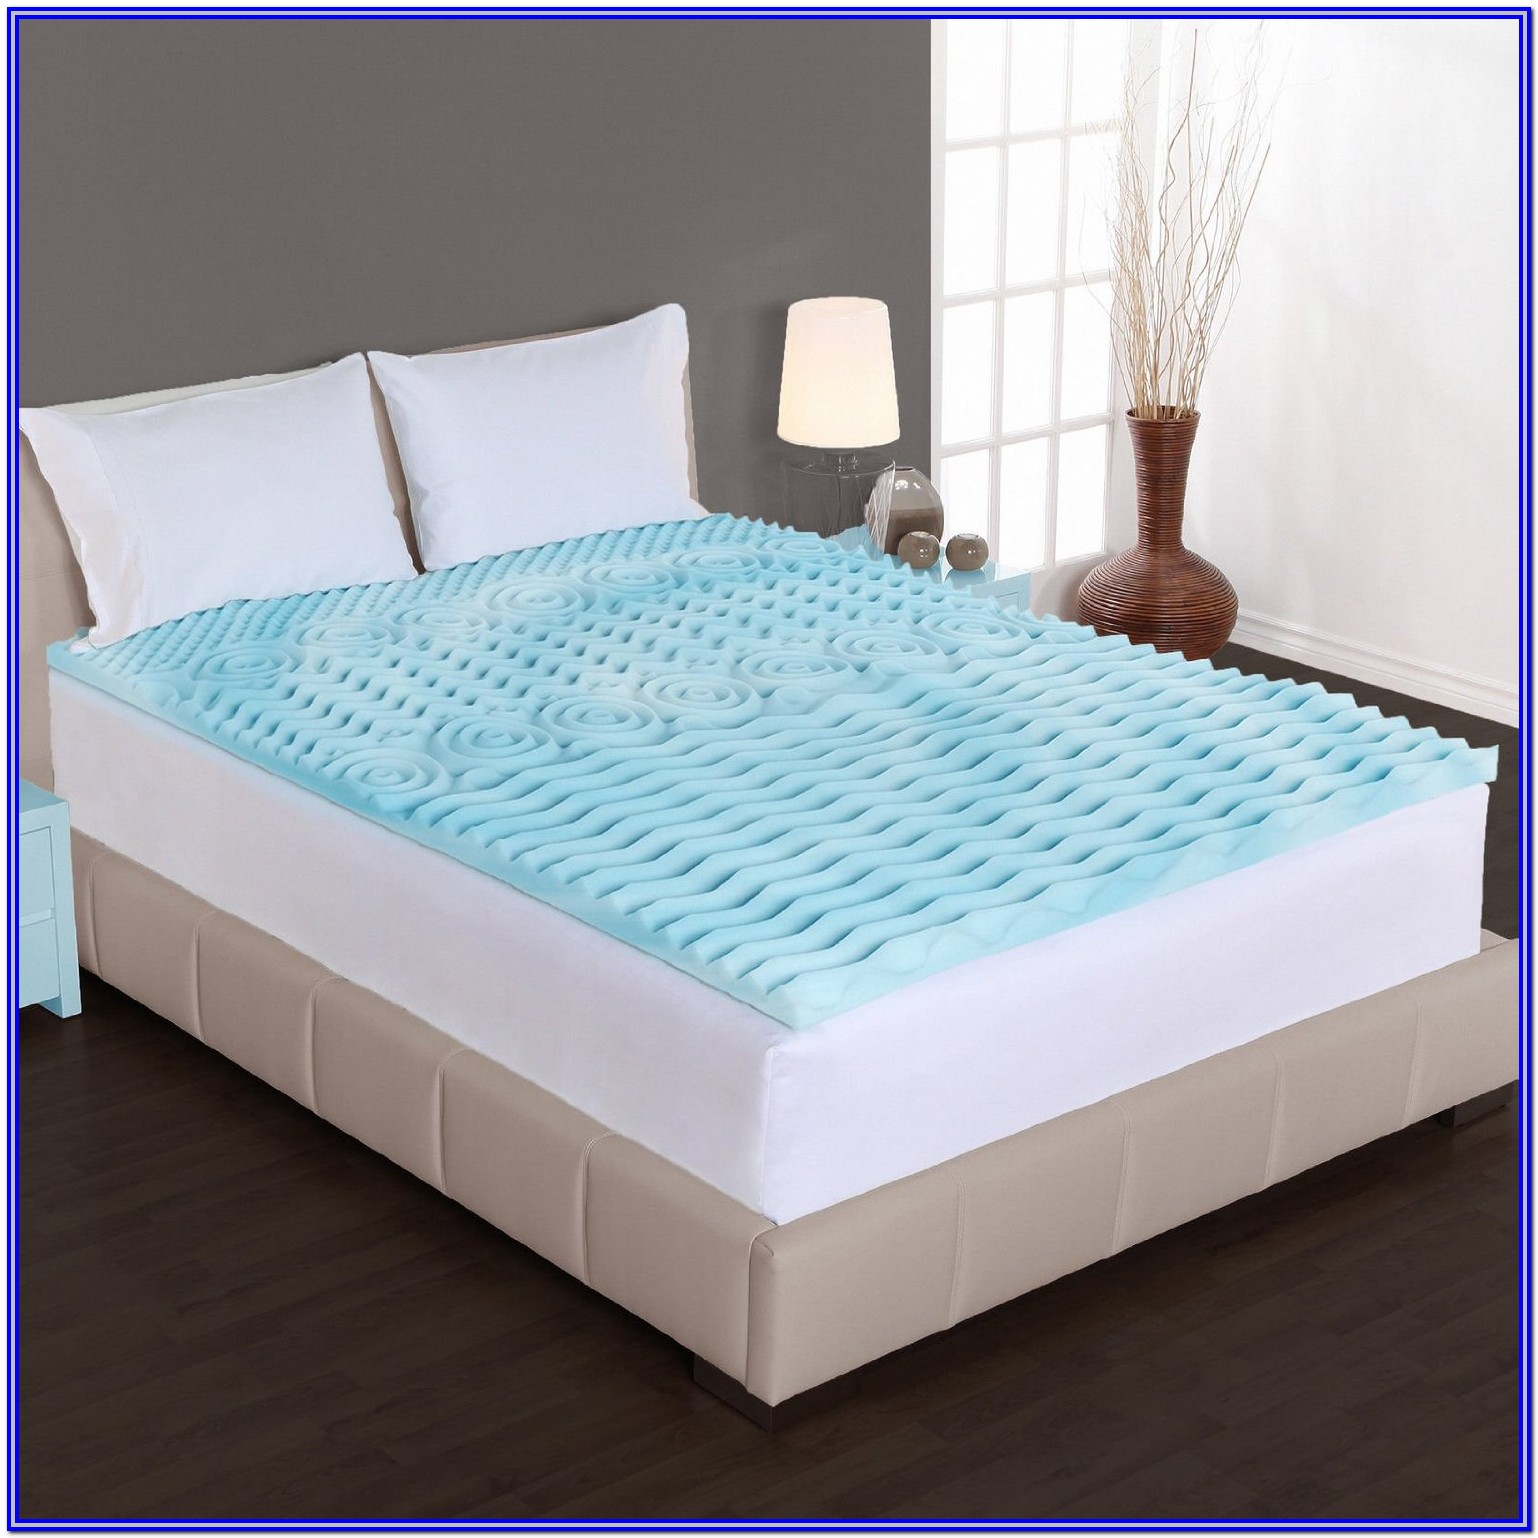 Cooler Pad For Bed